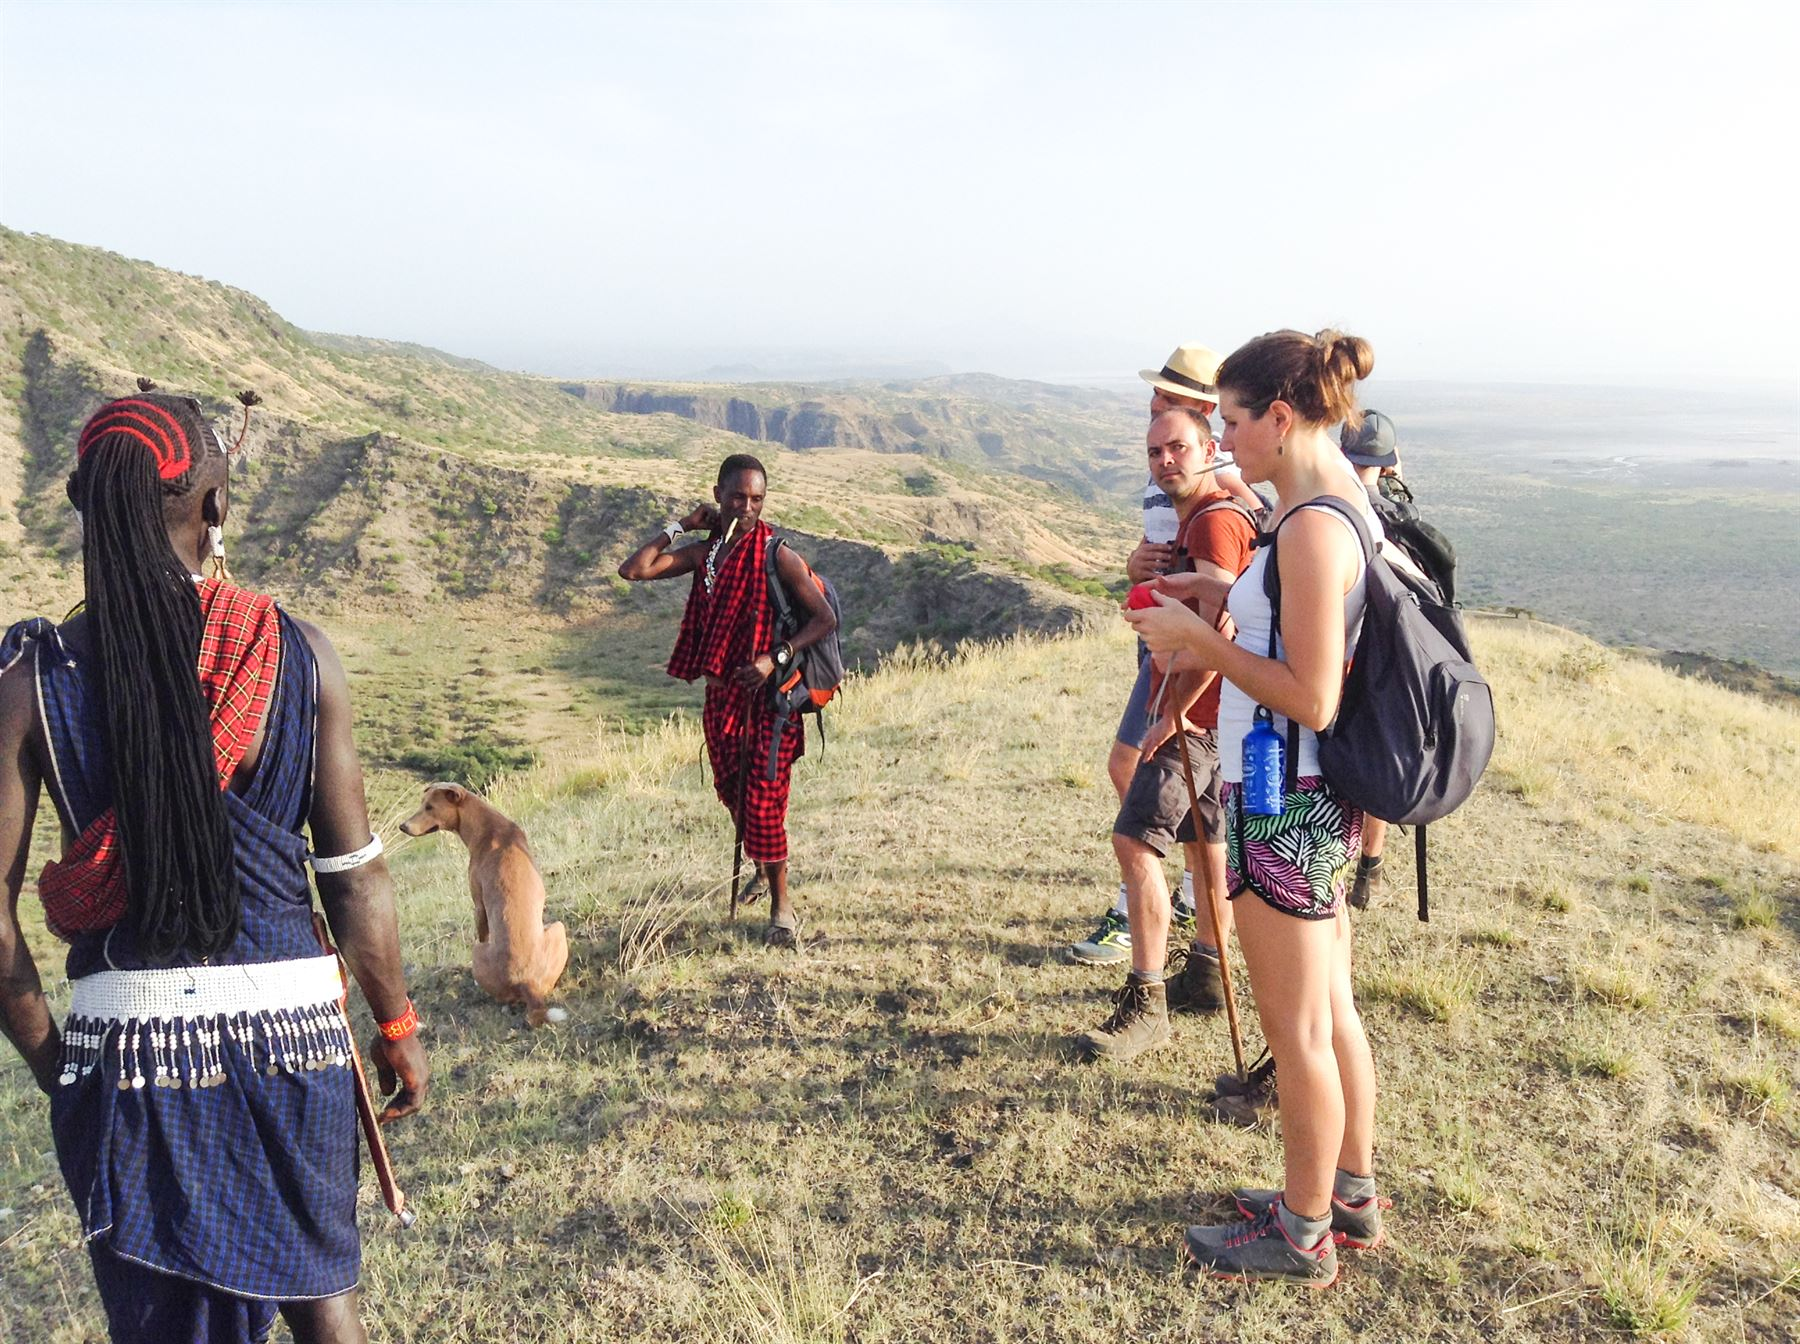 Tours and trekkings